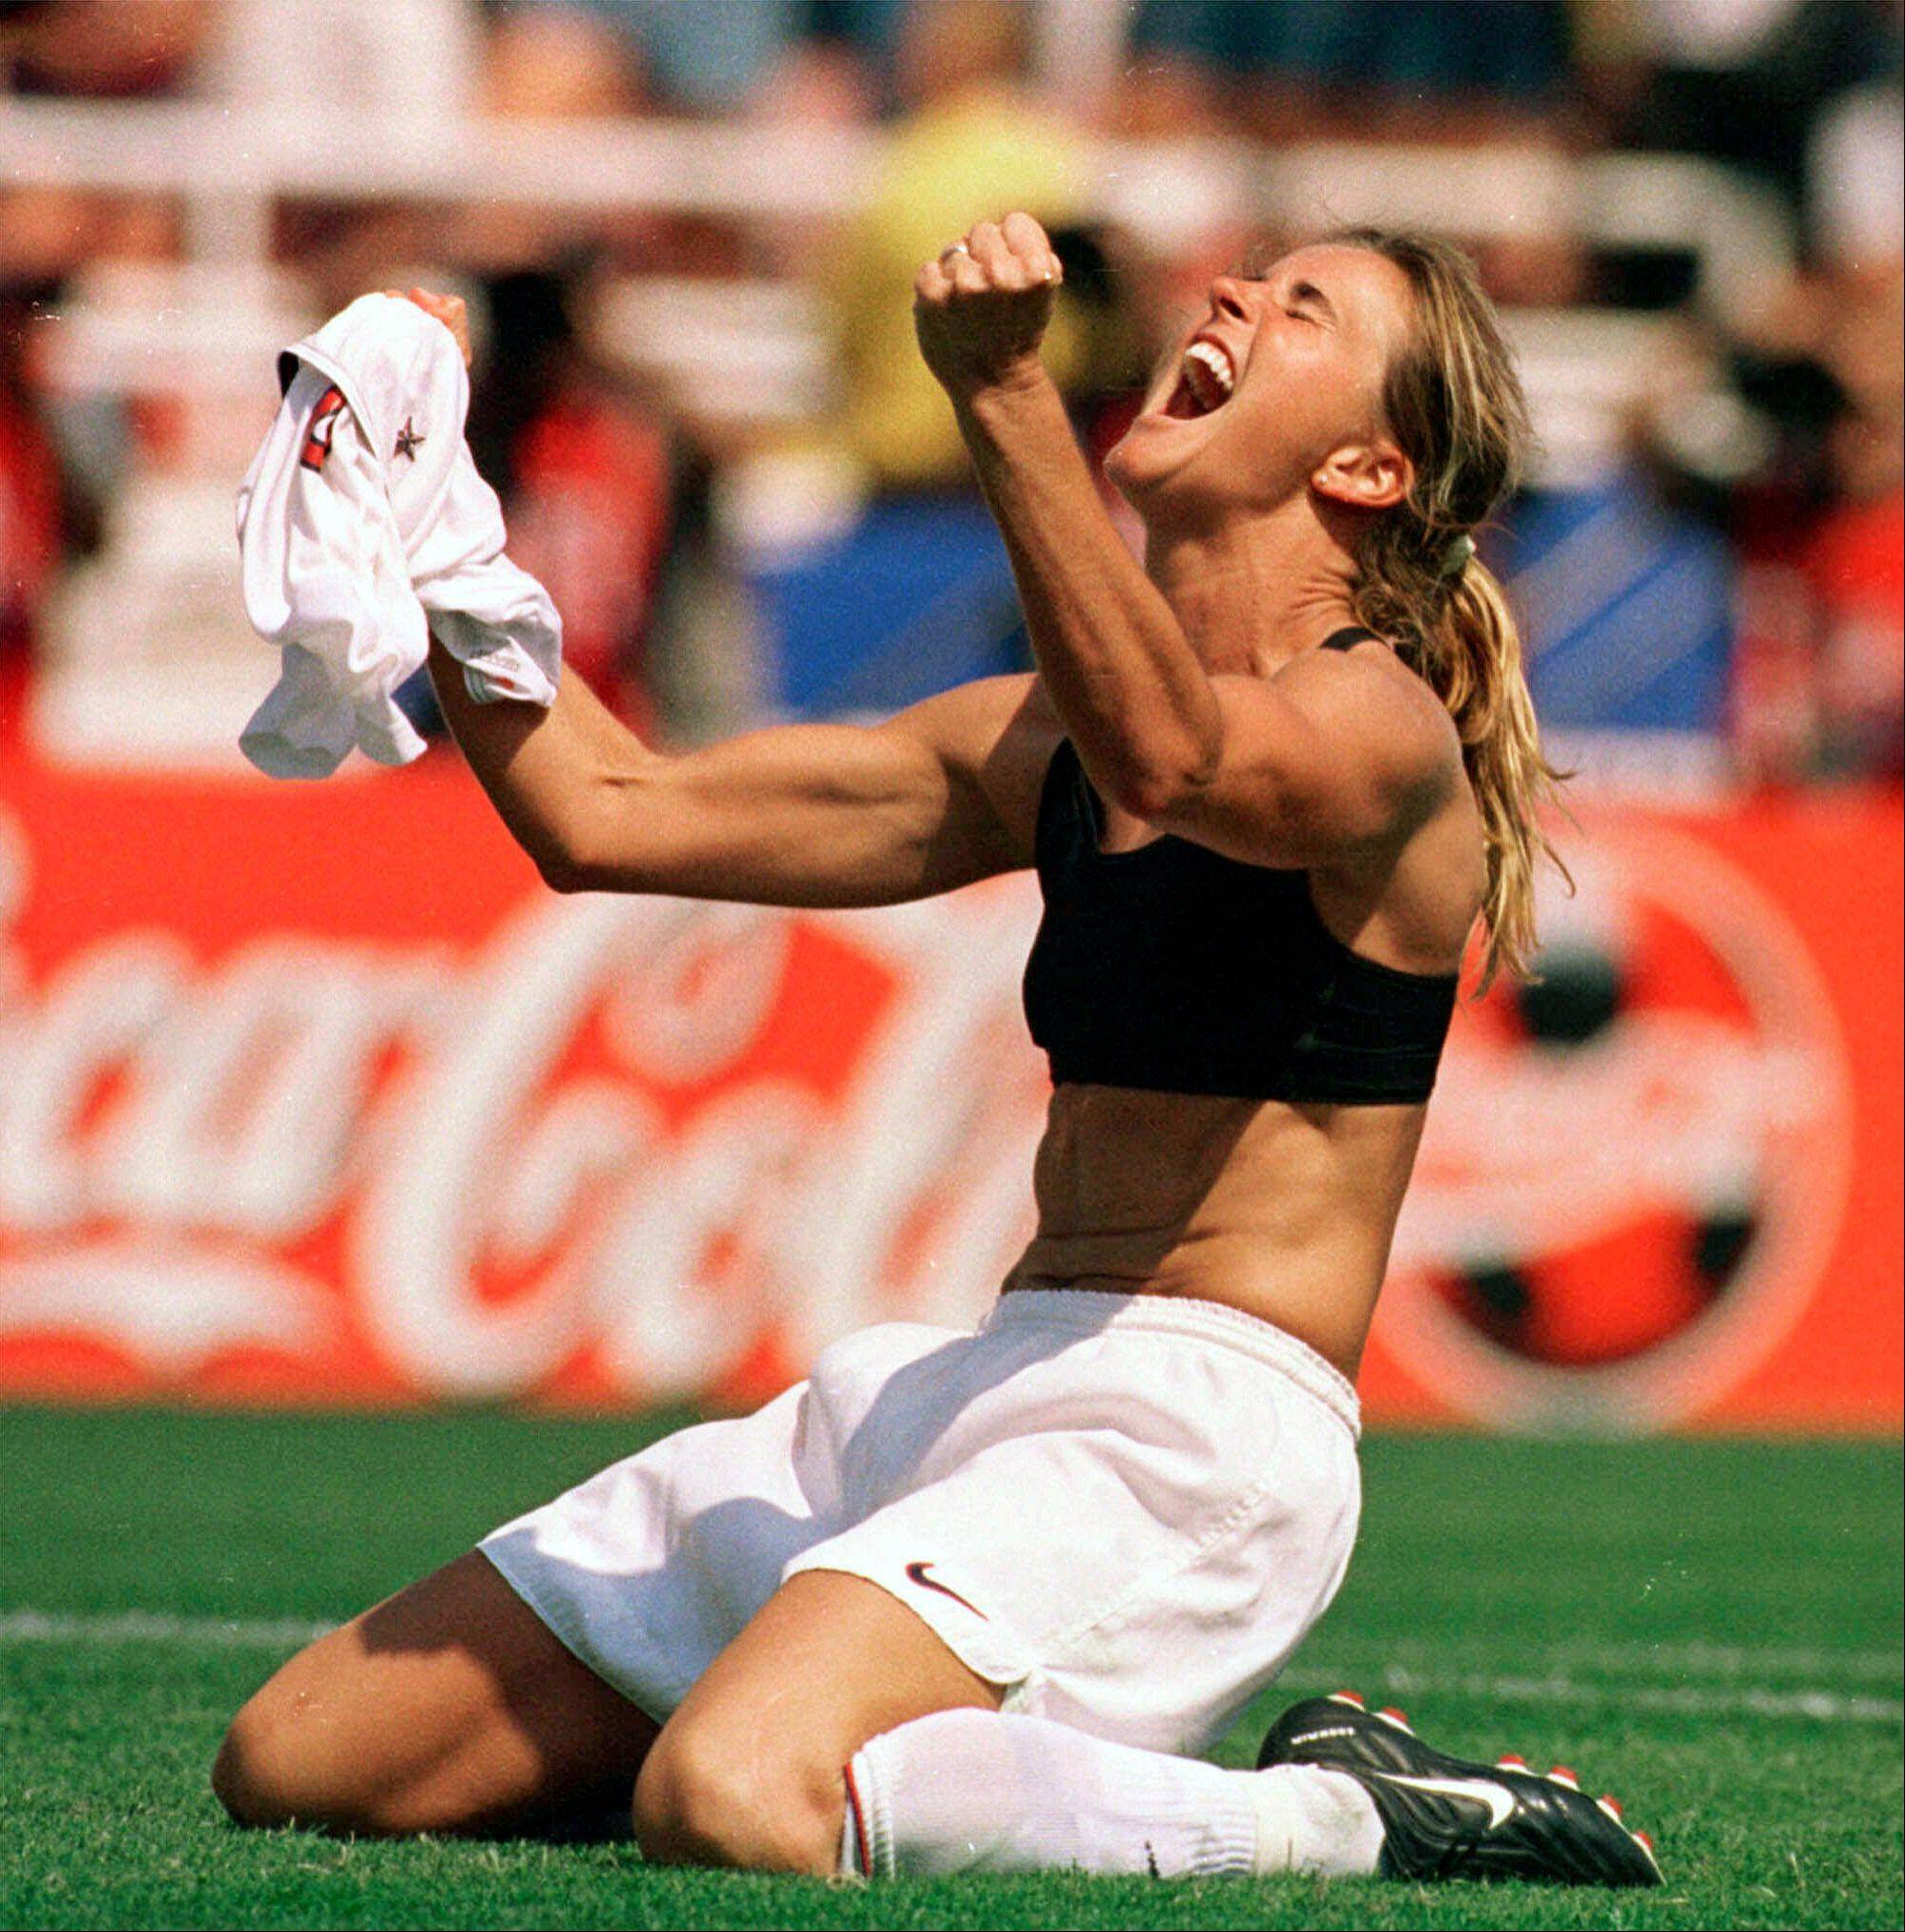 The United States' Brandi Chastain celebrates by taking off her jersey after kicking in the game-winning penalty shootout goal against China in the 1999 Women's World Cup Final at the Rose Bowl in Pasadena, Calif. Tony DiCicco sees more than a few similarities to his 1999 team, the last group of Americans to win the World Cup: heart, desire, the refusal to give up.